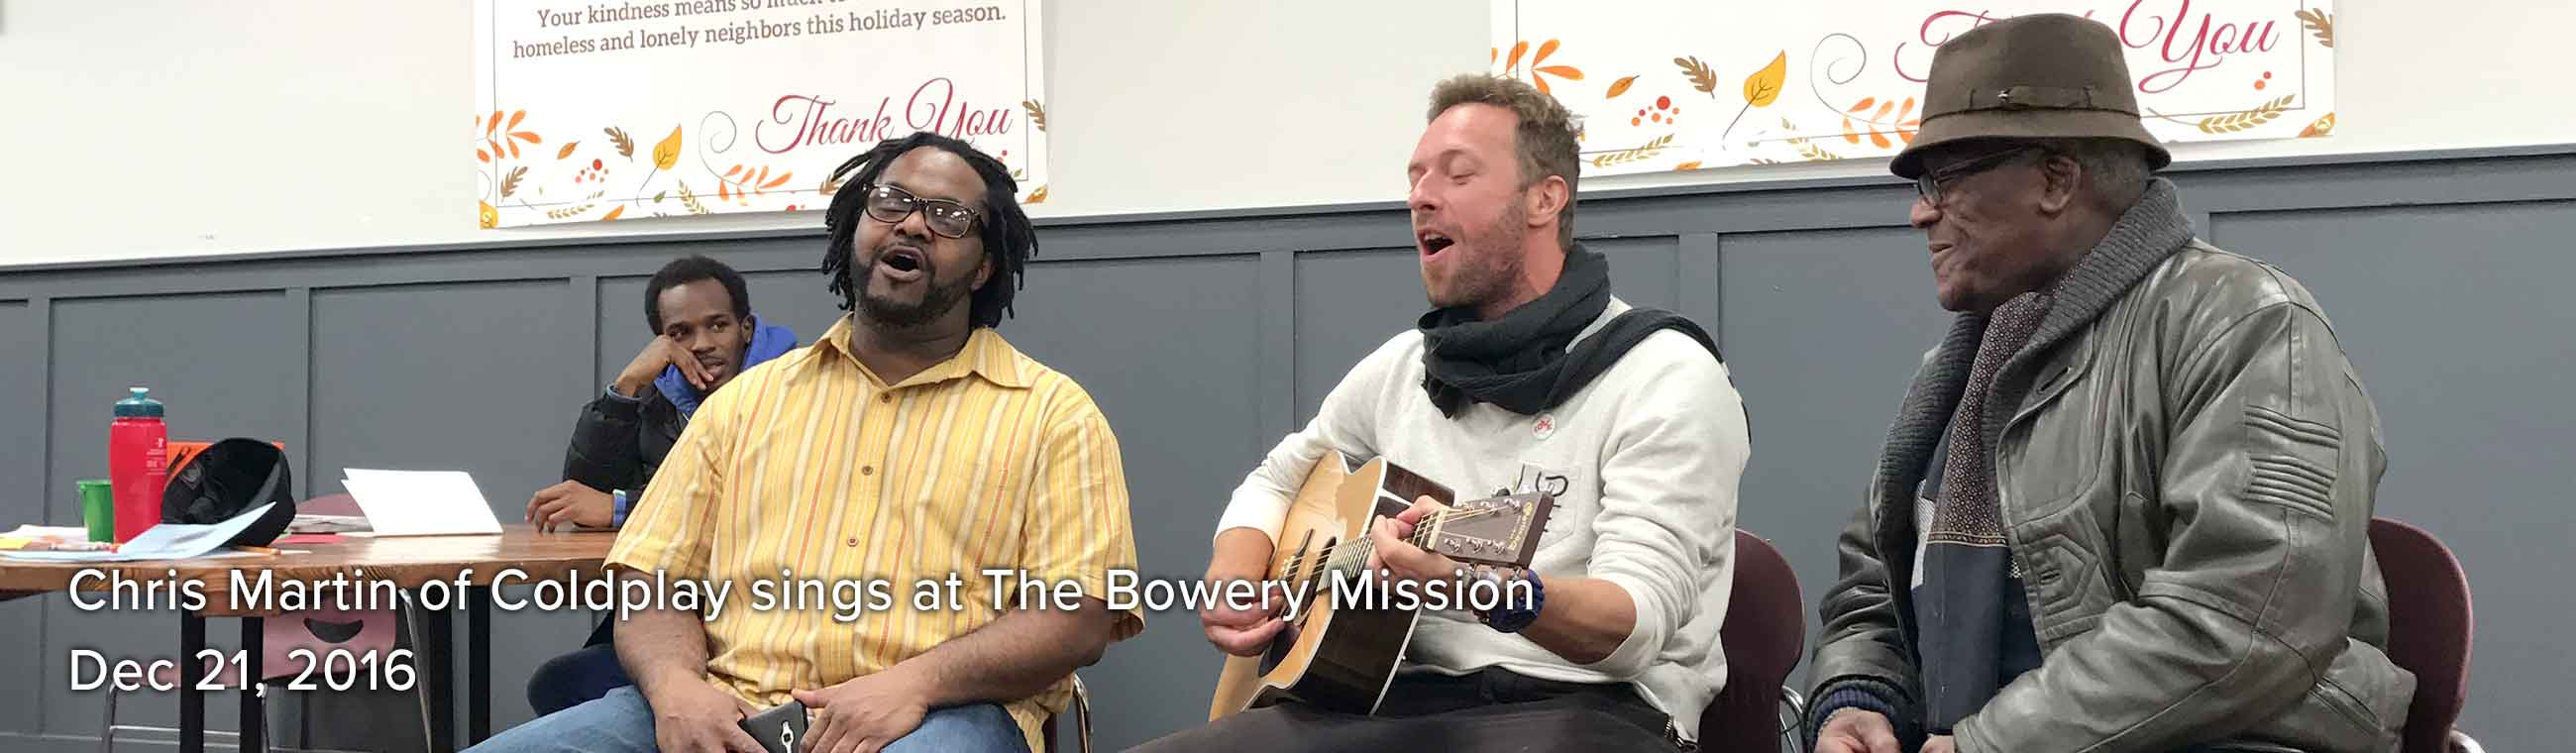 Chris Martin singing at The Bowery Mission